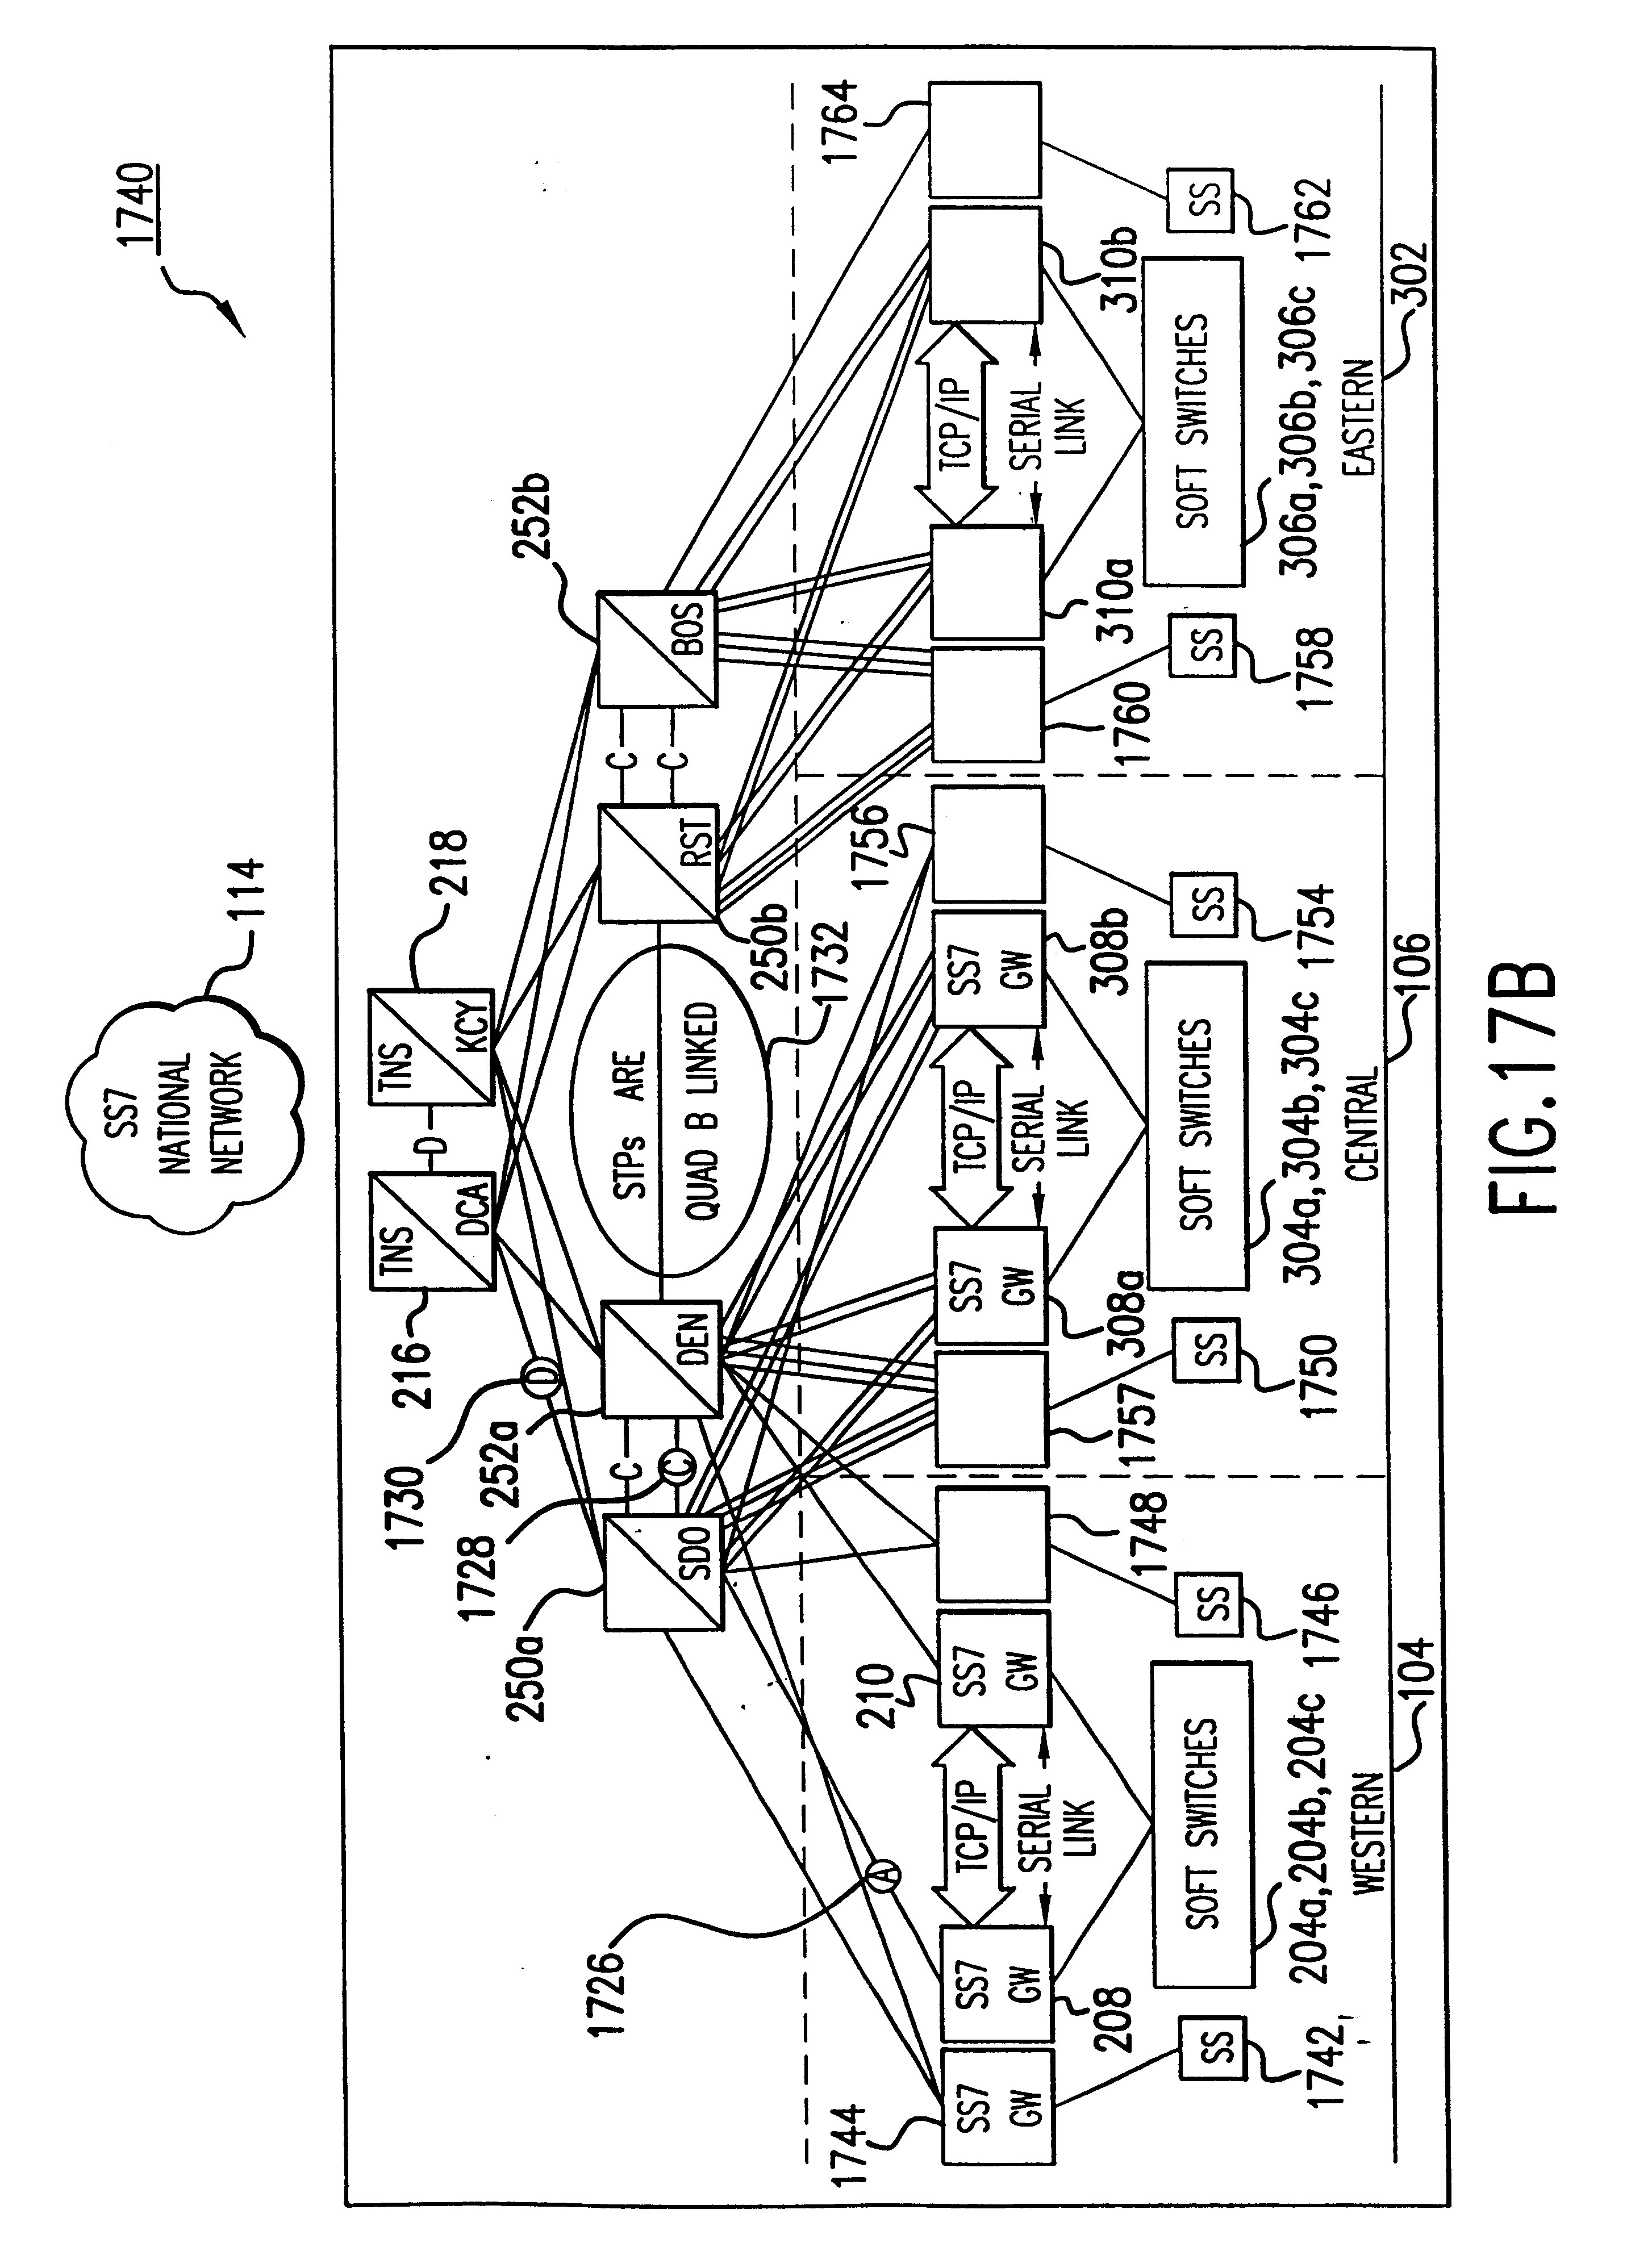 Patent Us 6614781 B1 2004 Western Star Engine Firewall Diagram Images